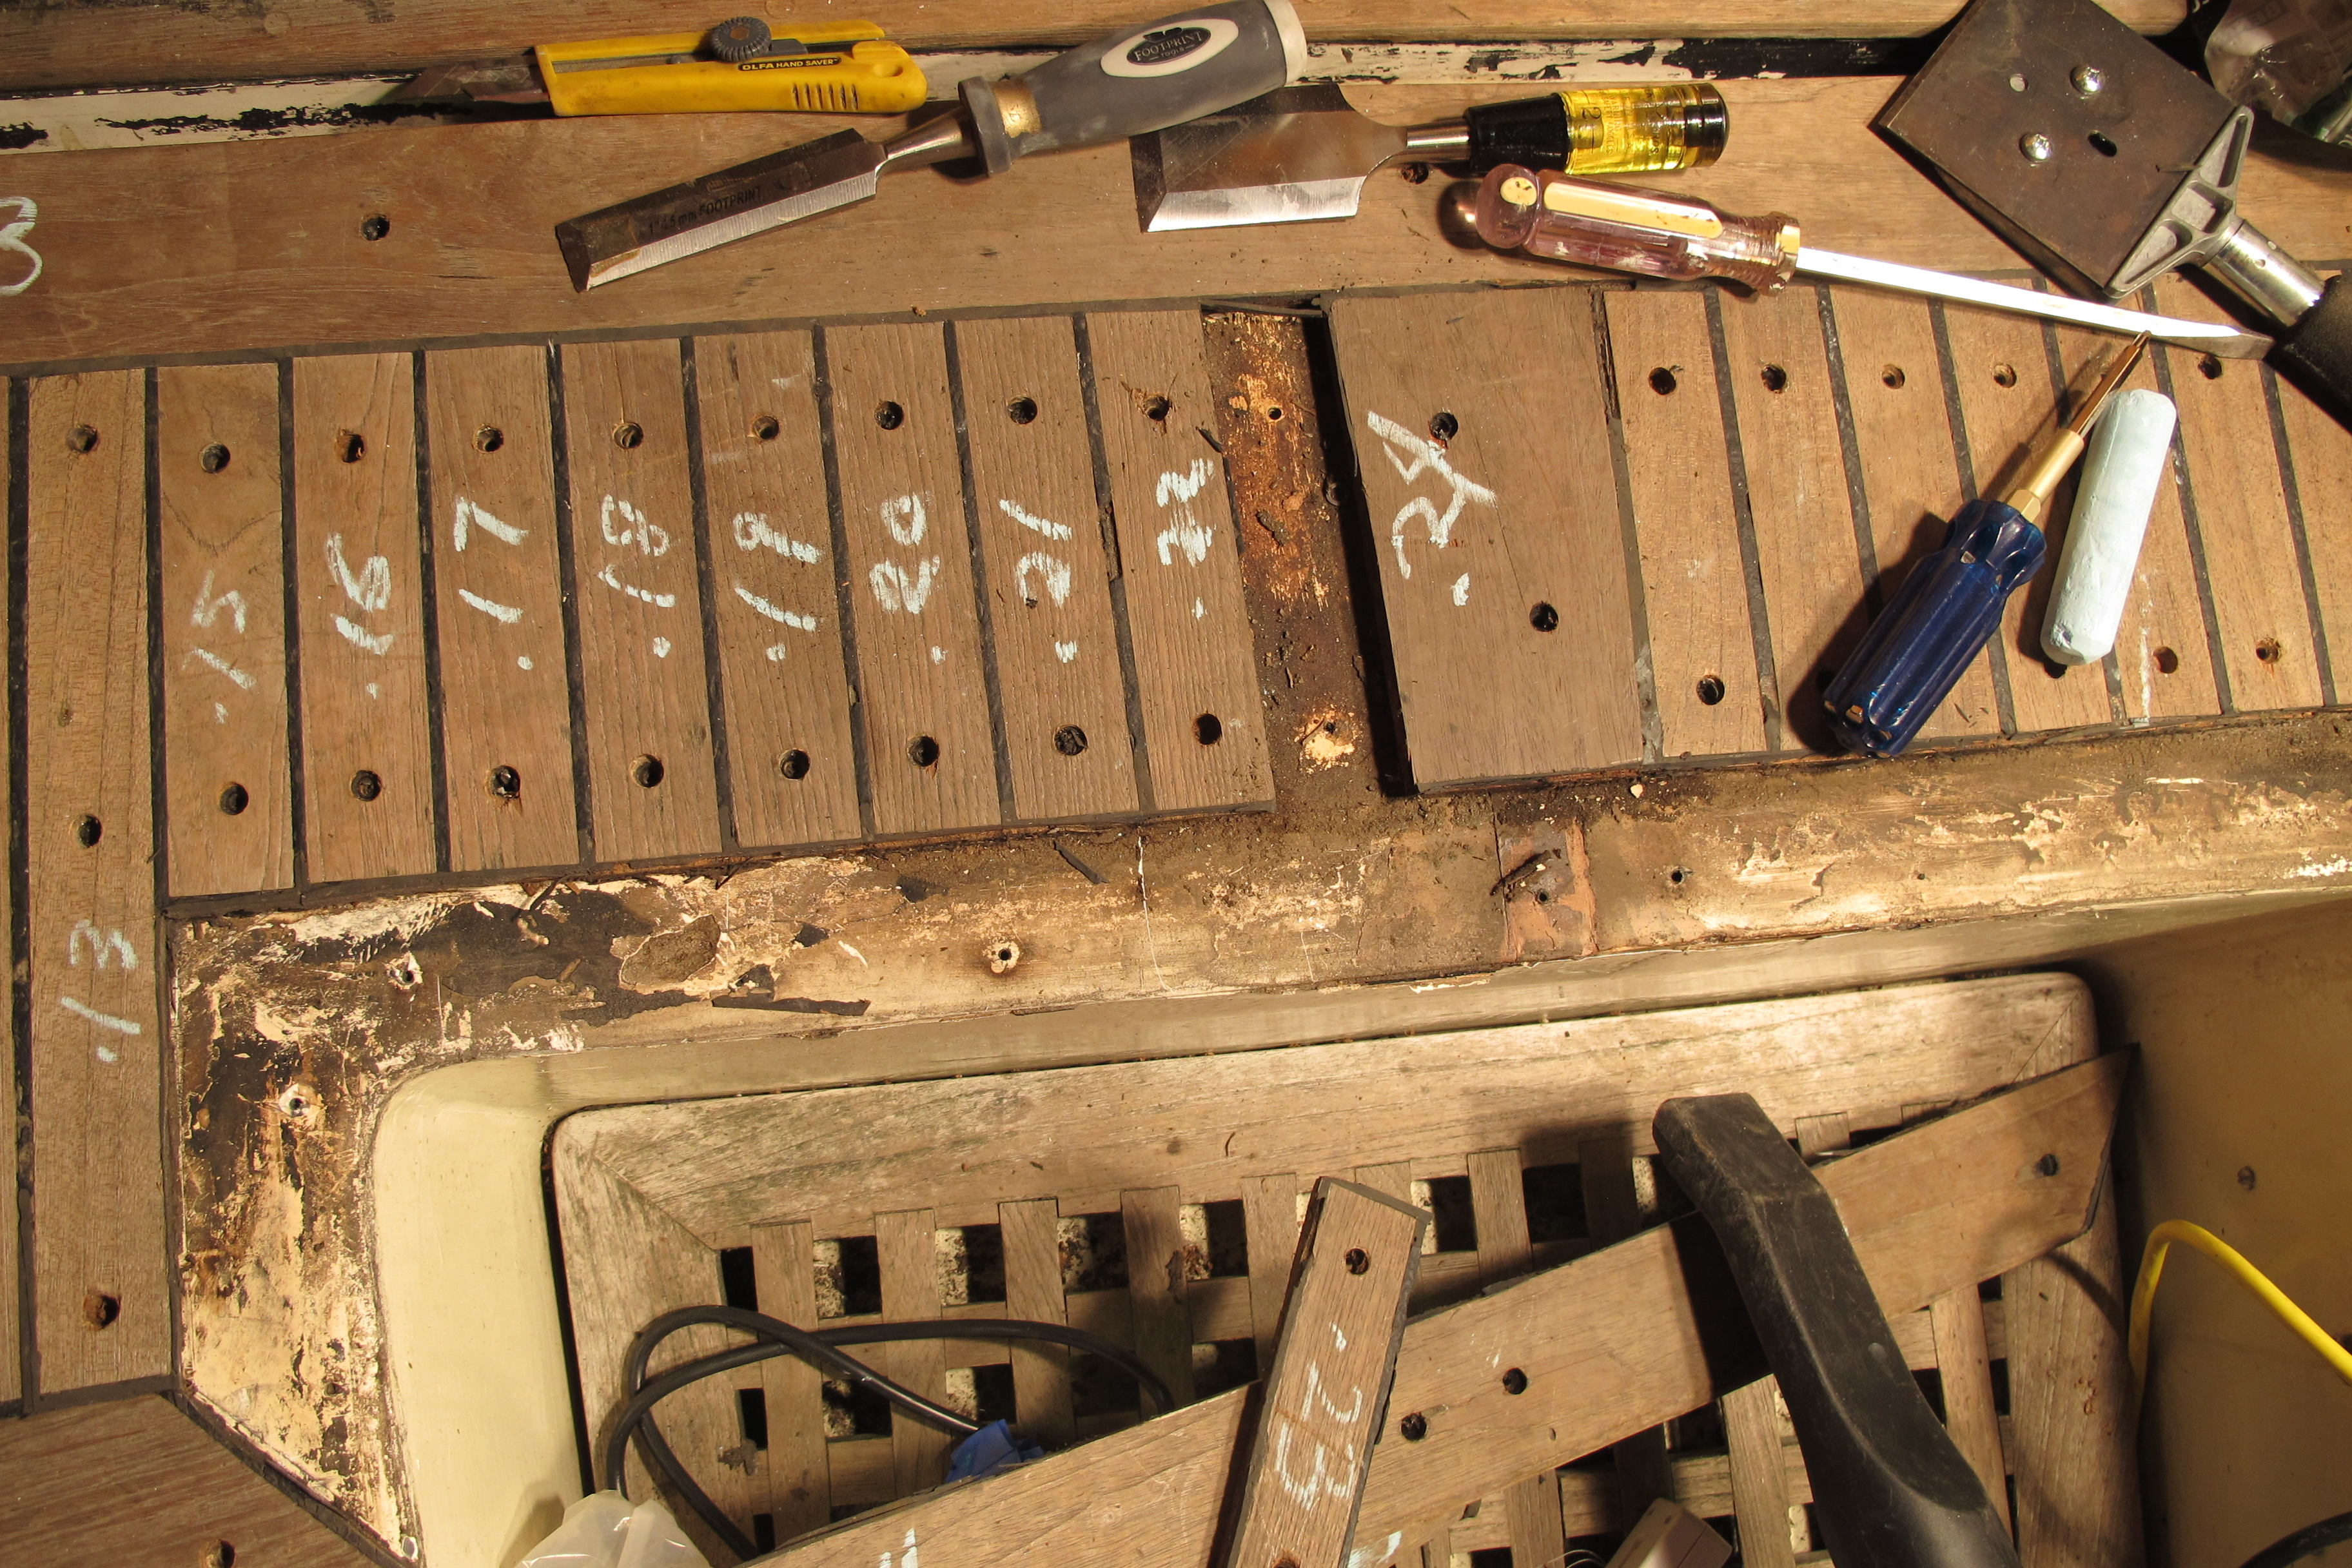 Screws removed, teak planks being carefully removed. Note numbering scheme to help with re-assembly